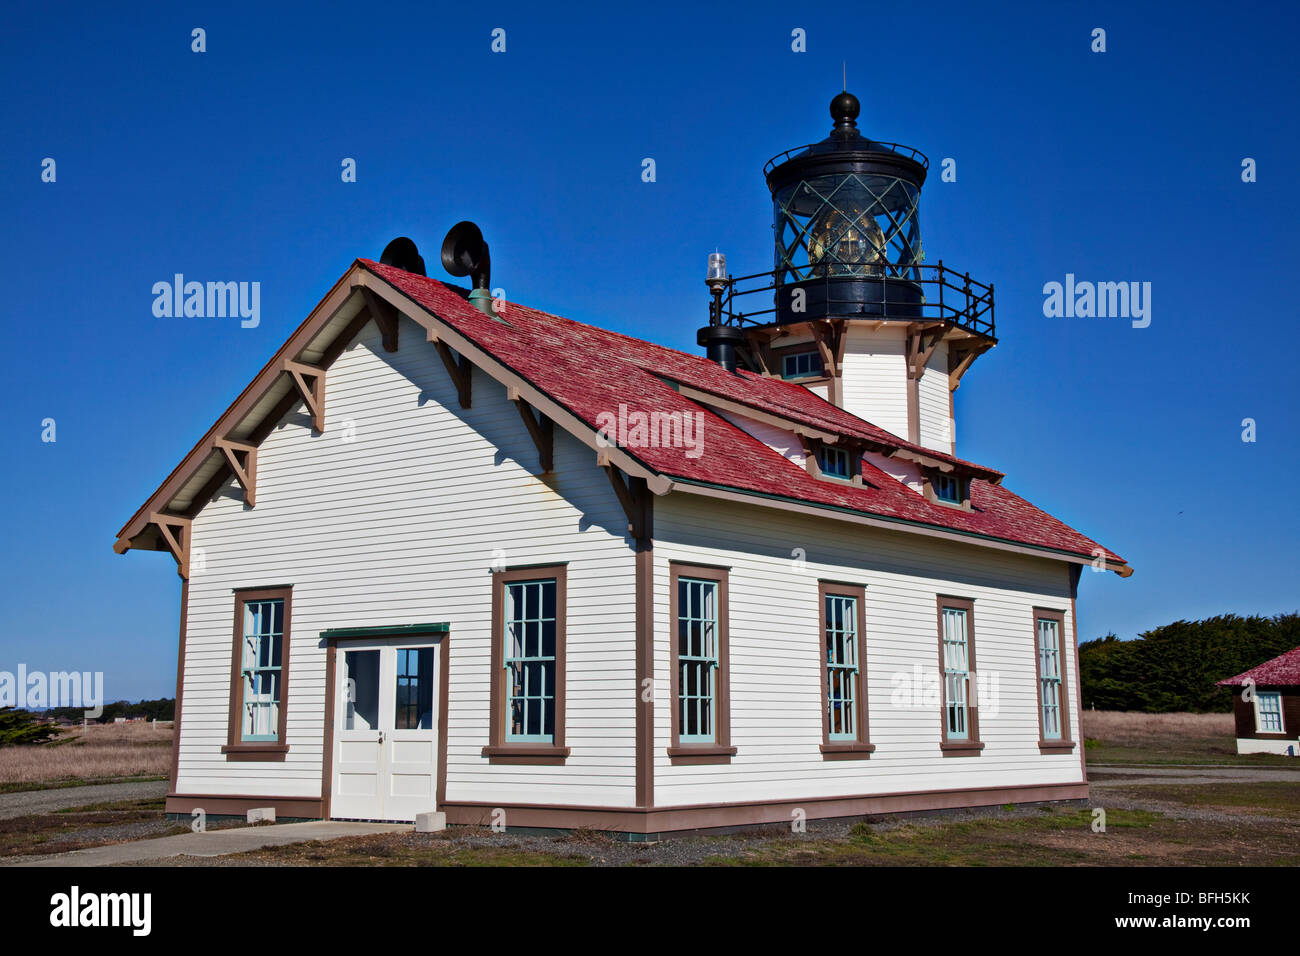 Point Cabrillo Light Station, lighthouse along the Mendocino coast, California - Stock Image